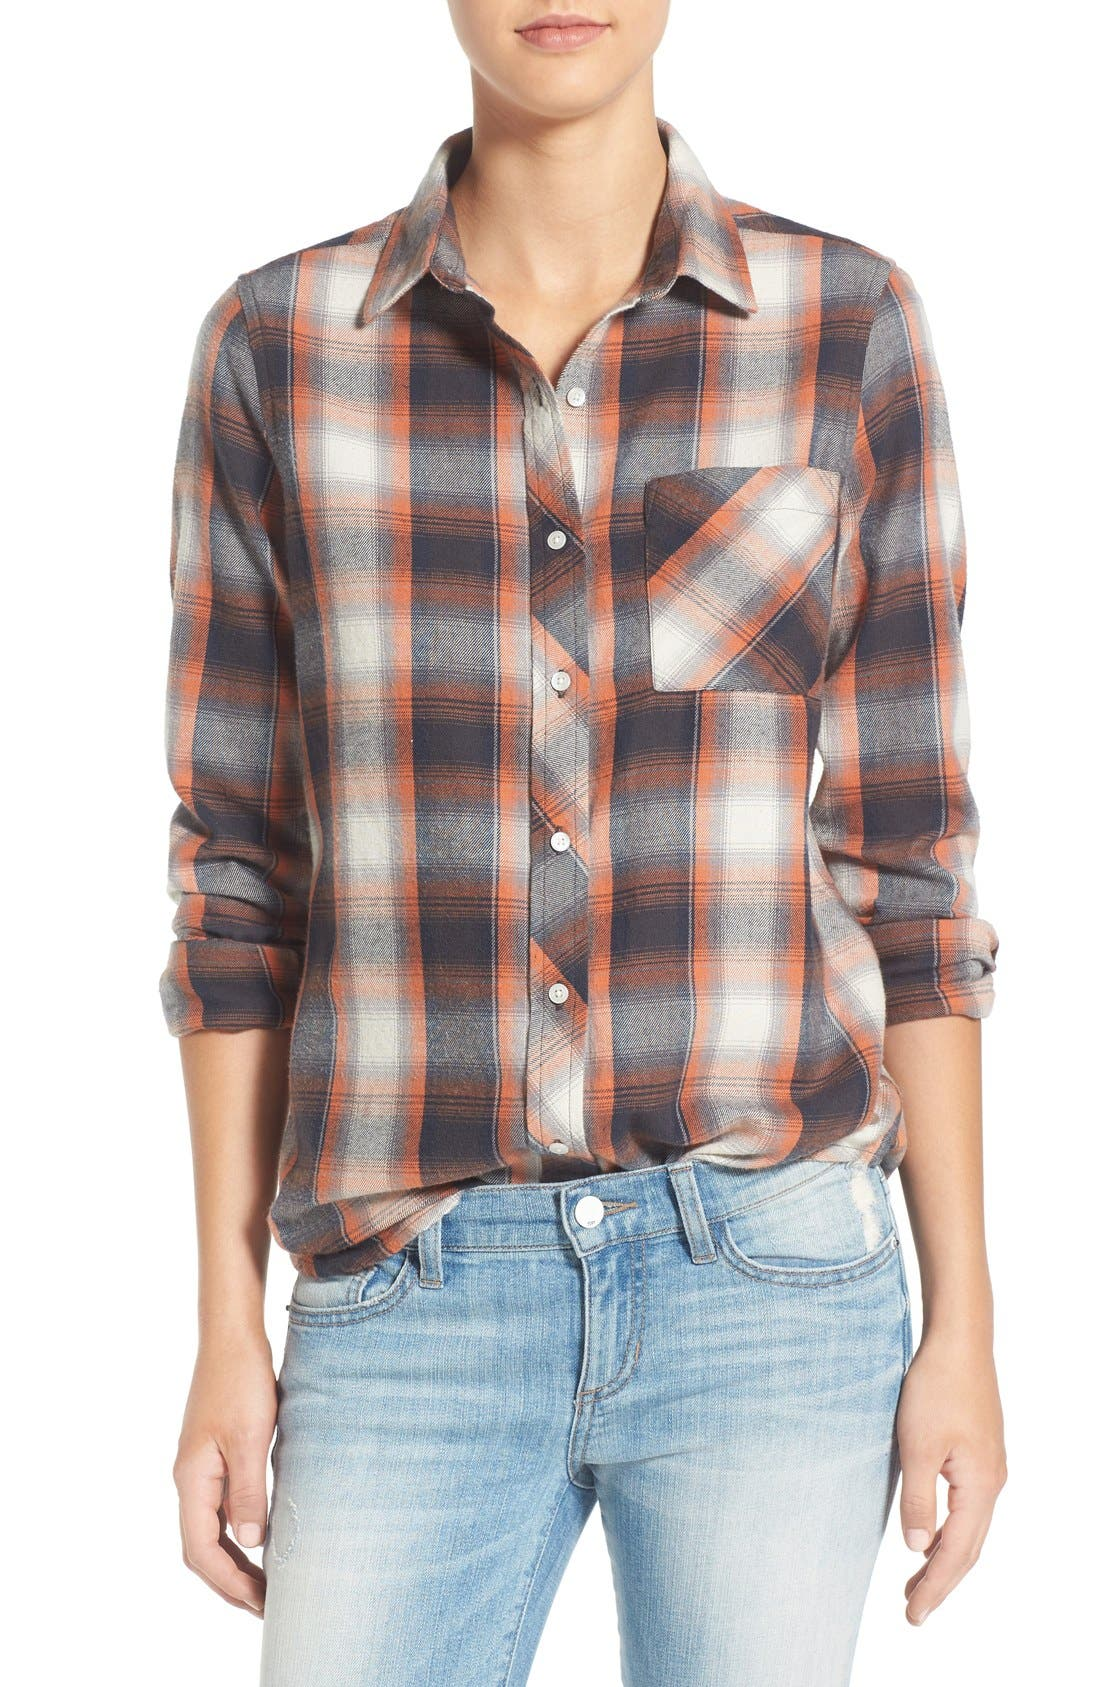 Alternate Image 1 Selected - Rip Curl 'Zarca' Plaid Flannel Shirt